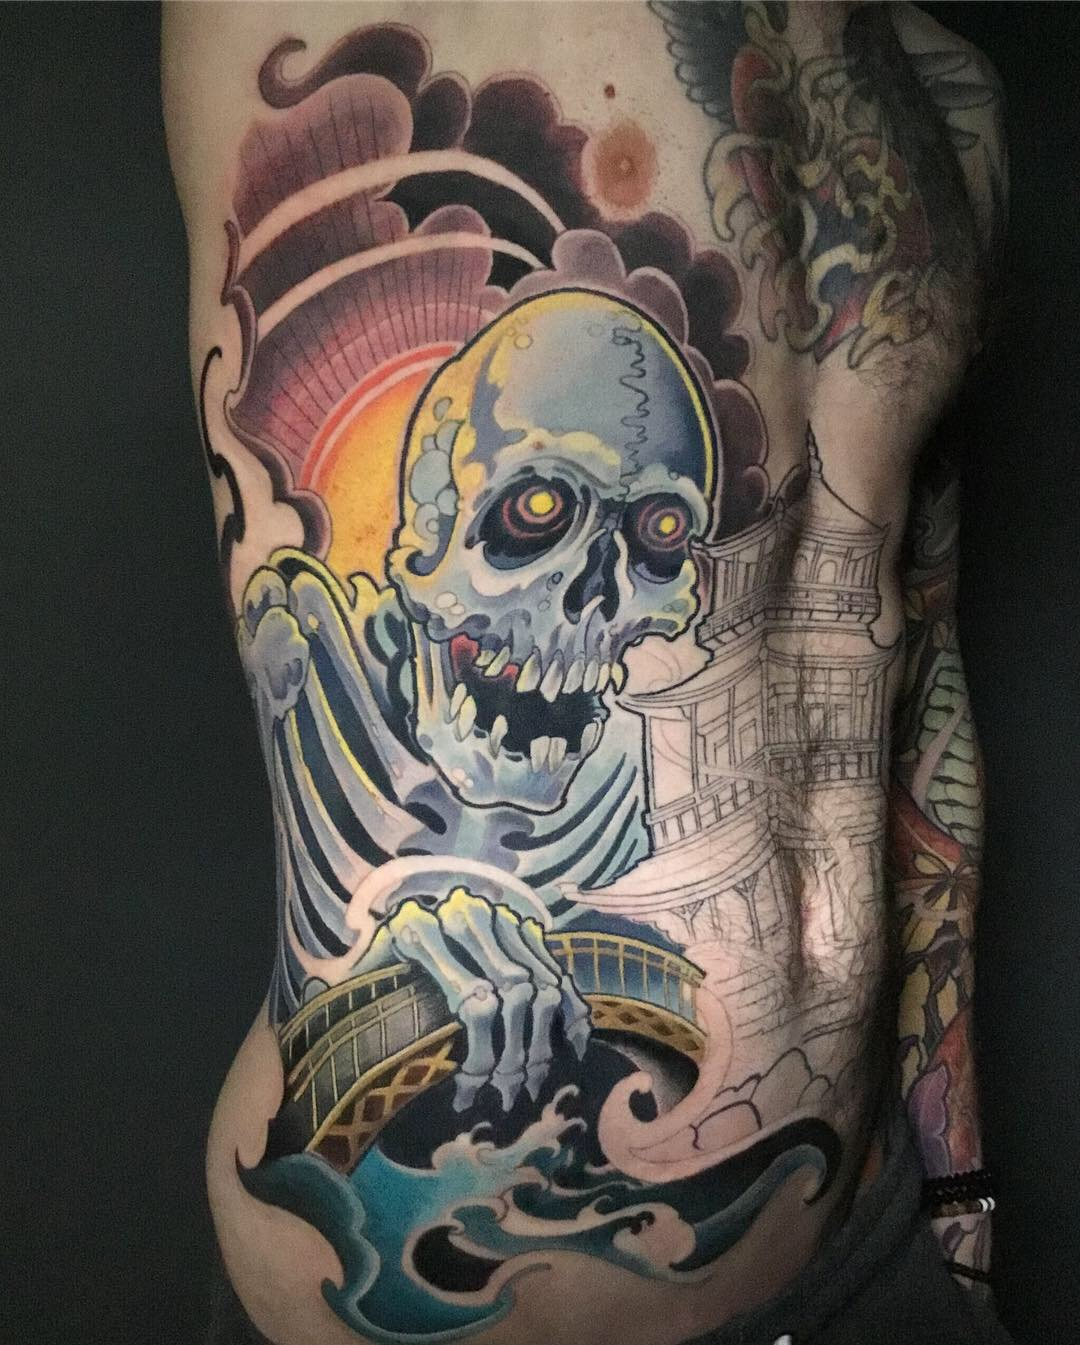 Alex Dupuis Tattoo 2019 Okanagan Tattoo Show & Brewfest Artist